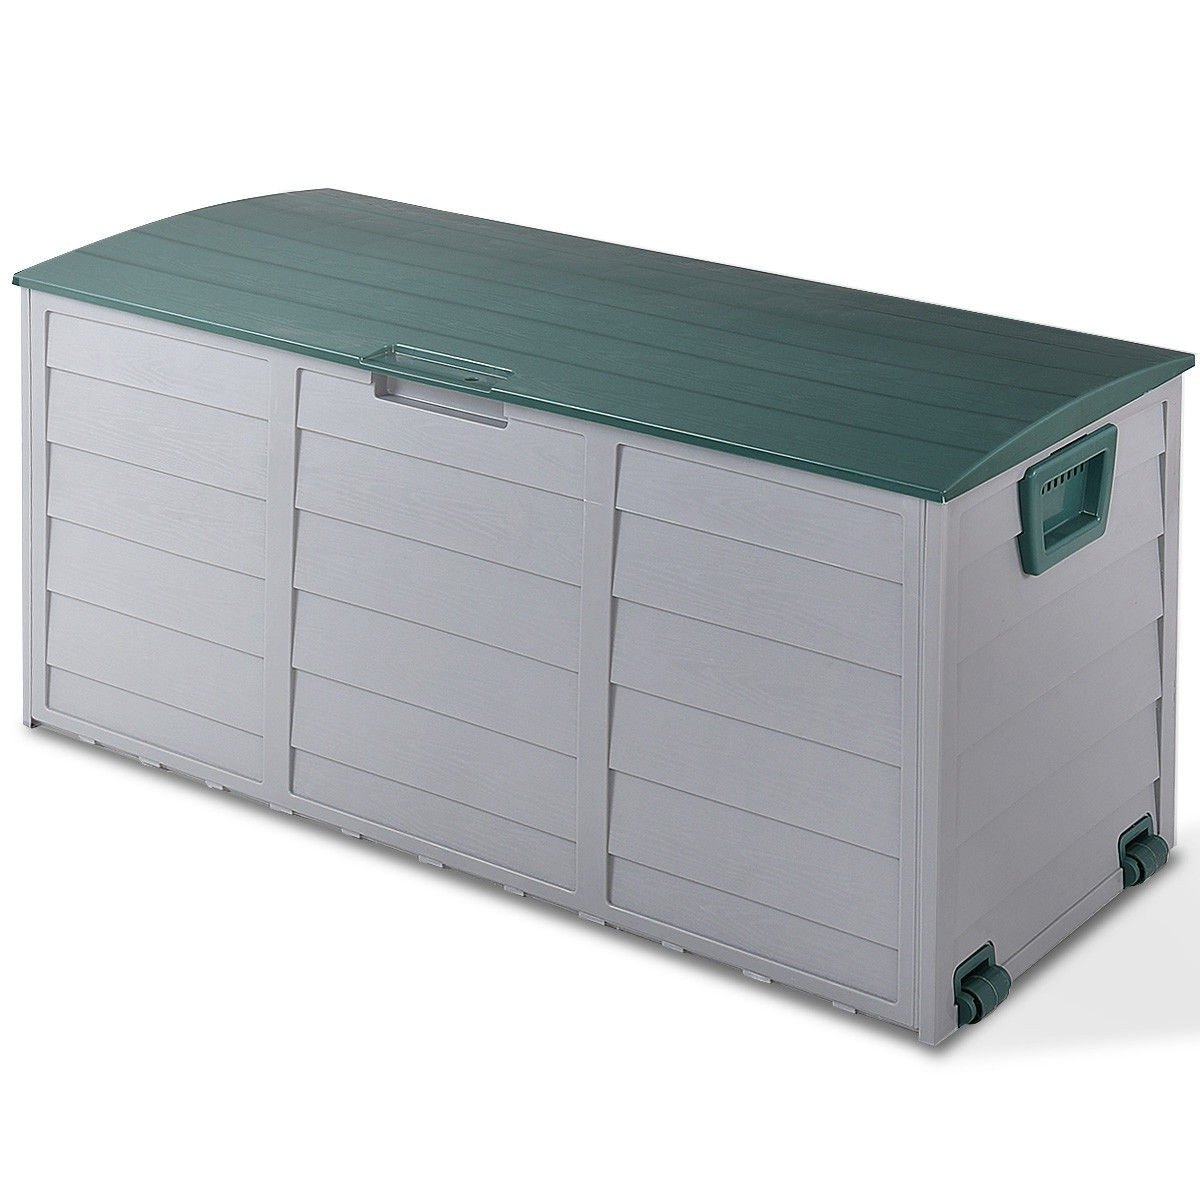 COSTWAY 70 Gallon Durable Outdoor Plasic Storage Box + FREE E-Book by COSTWAY (Image #1)